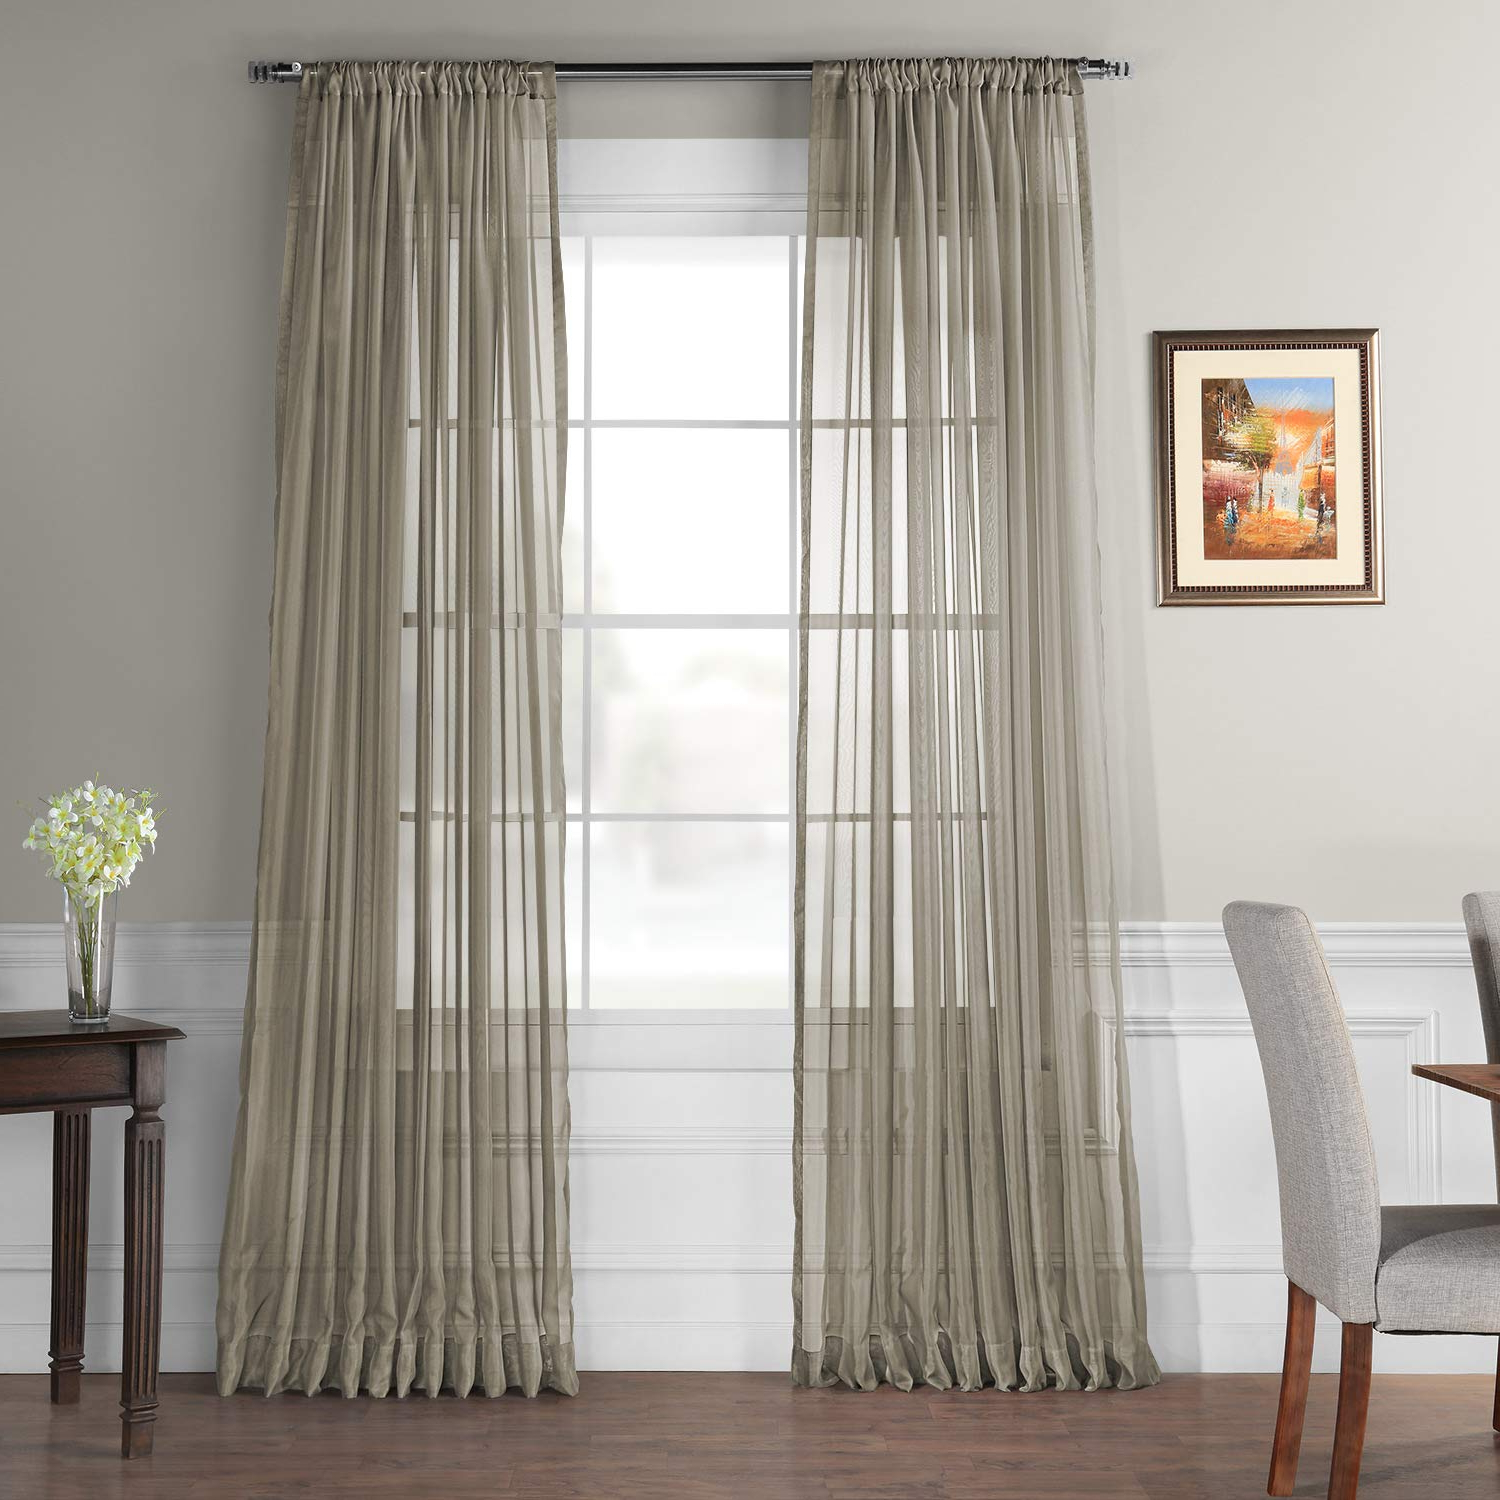 Hpd Half Price Drapes Extra Wide Solid Voile Poly Sheer Curtain, Museum Grey (grey) Within Latest Signature Extrawide Double Layer Sheer Curtain Panels (View 15 of 20)